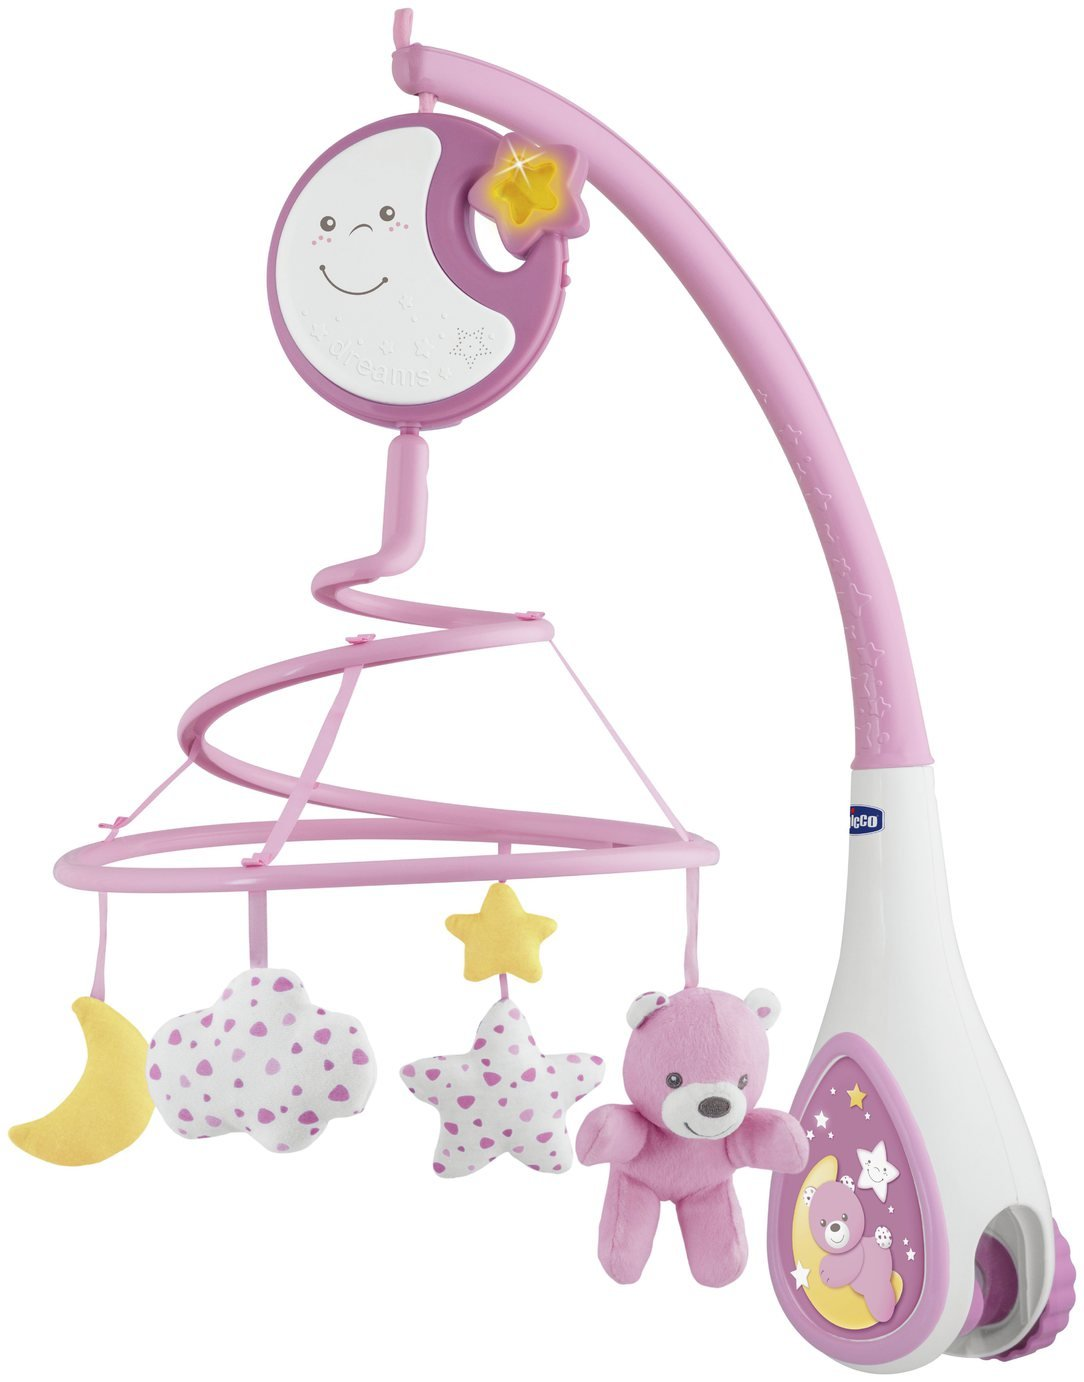 'Chicco Next2 Dreams Cot Mobile - Pink